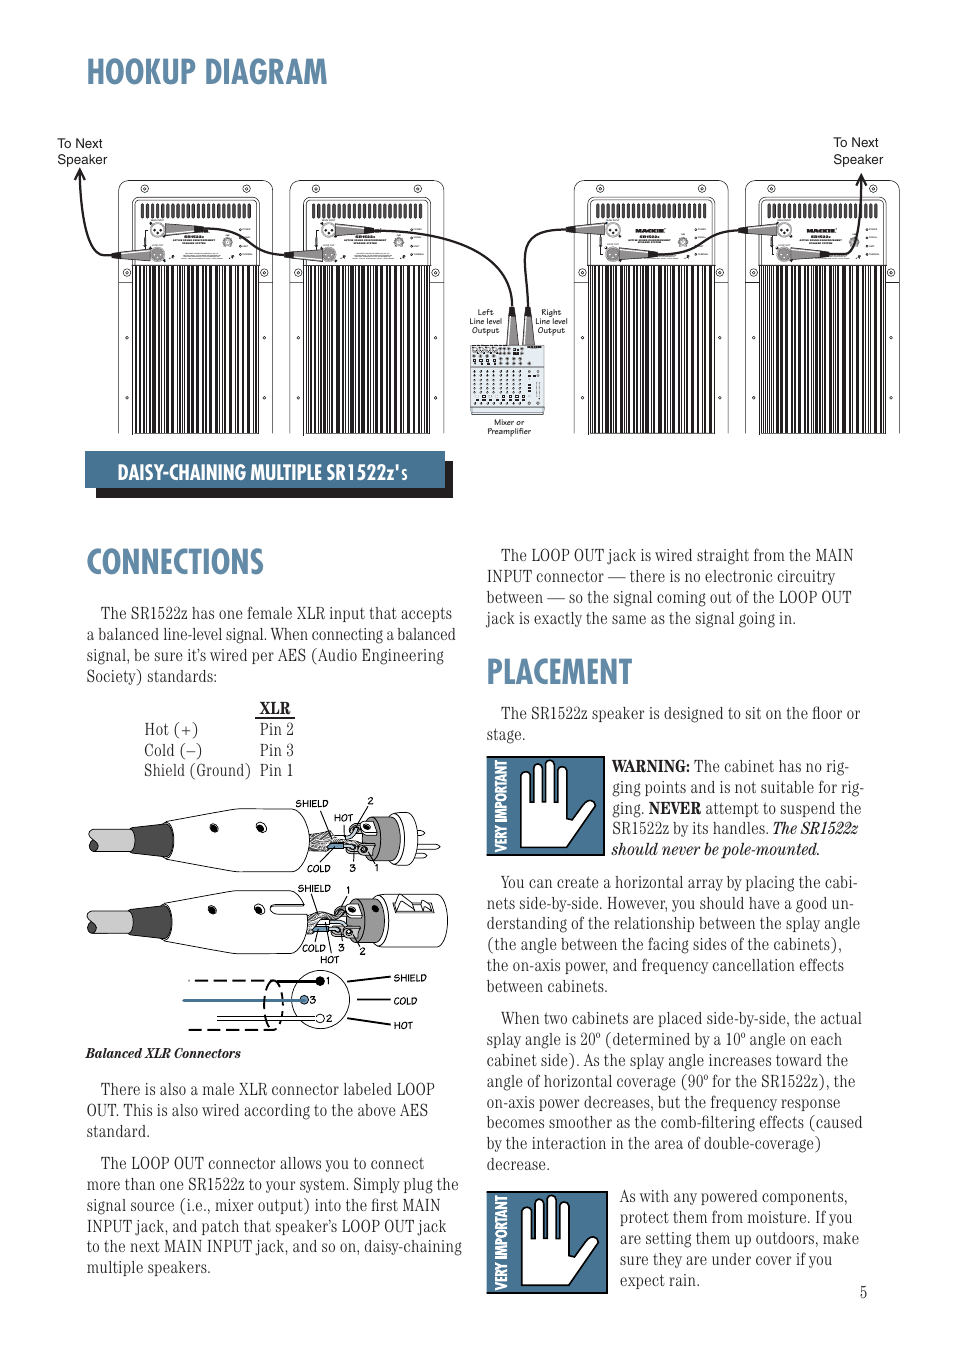 hight resolution of hookup diagram connections placement daisy chaining multiple sr1522z balanced xlr connectors